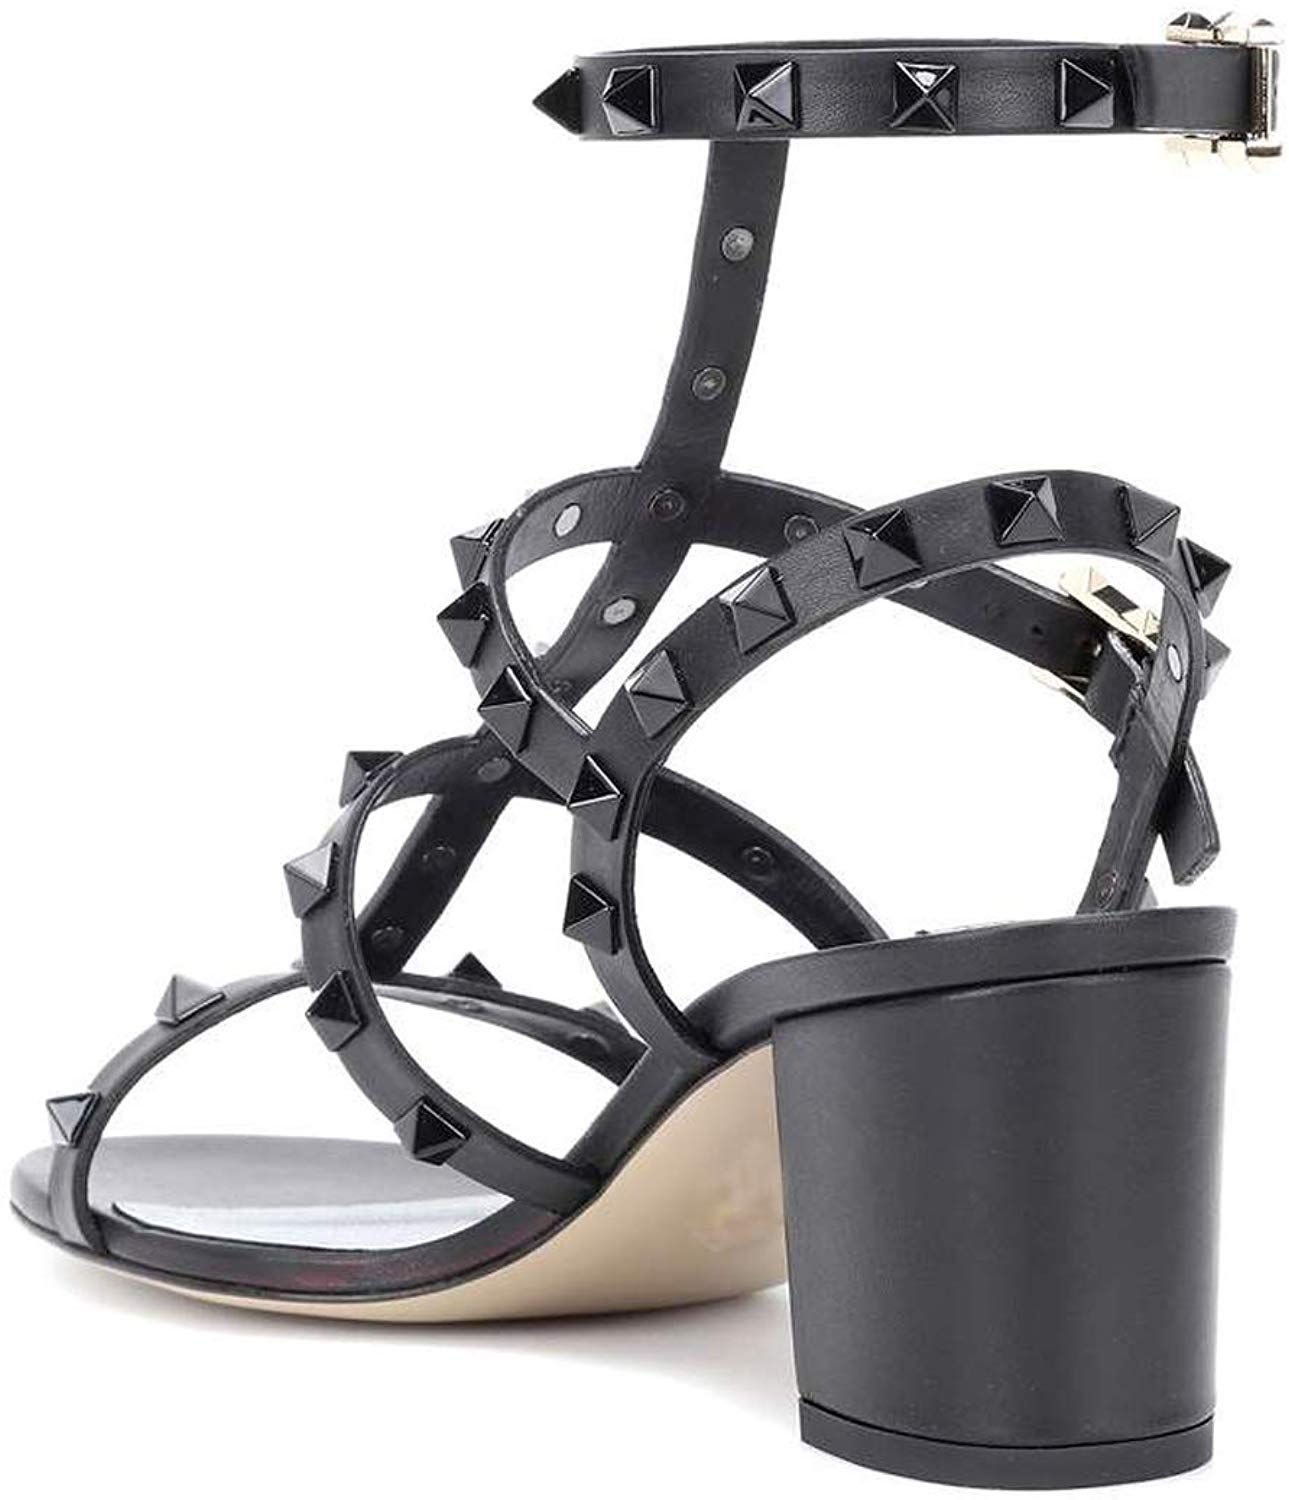 84dd1ea91 Amazon.com | Comfity Sandals for Women, Rivets Studded Strappy Block Heels  Slingback Gladiator Shoes Cut Out Dress Sandals | Shoes